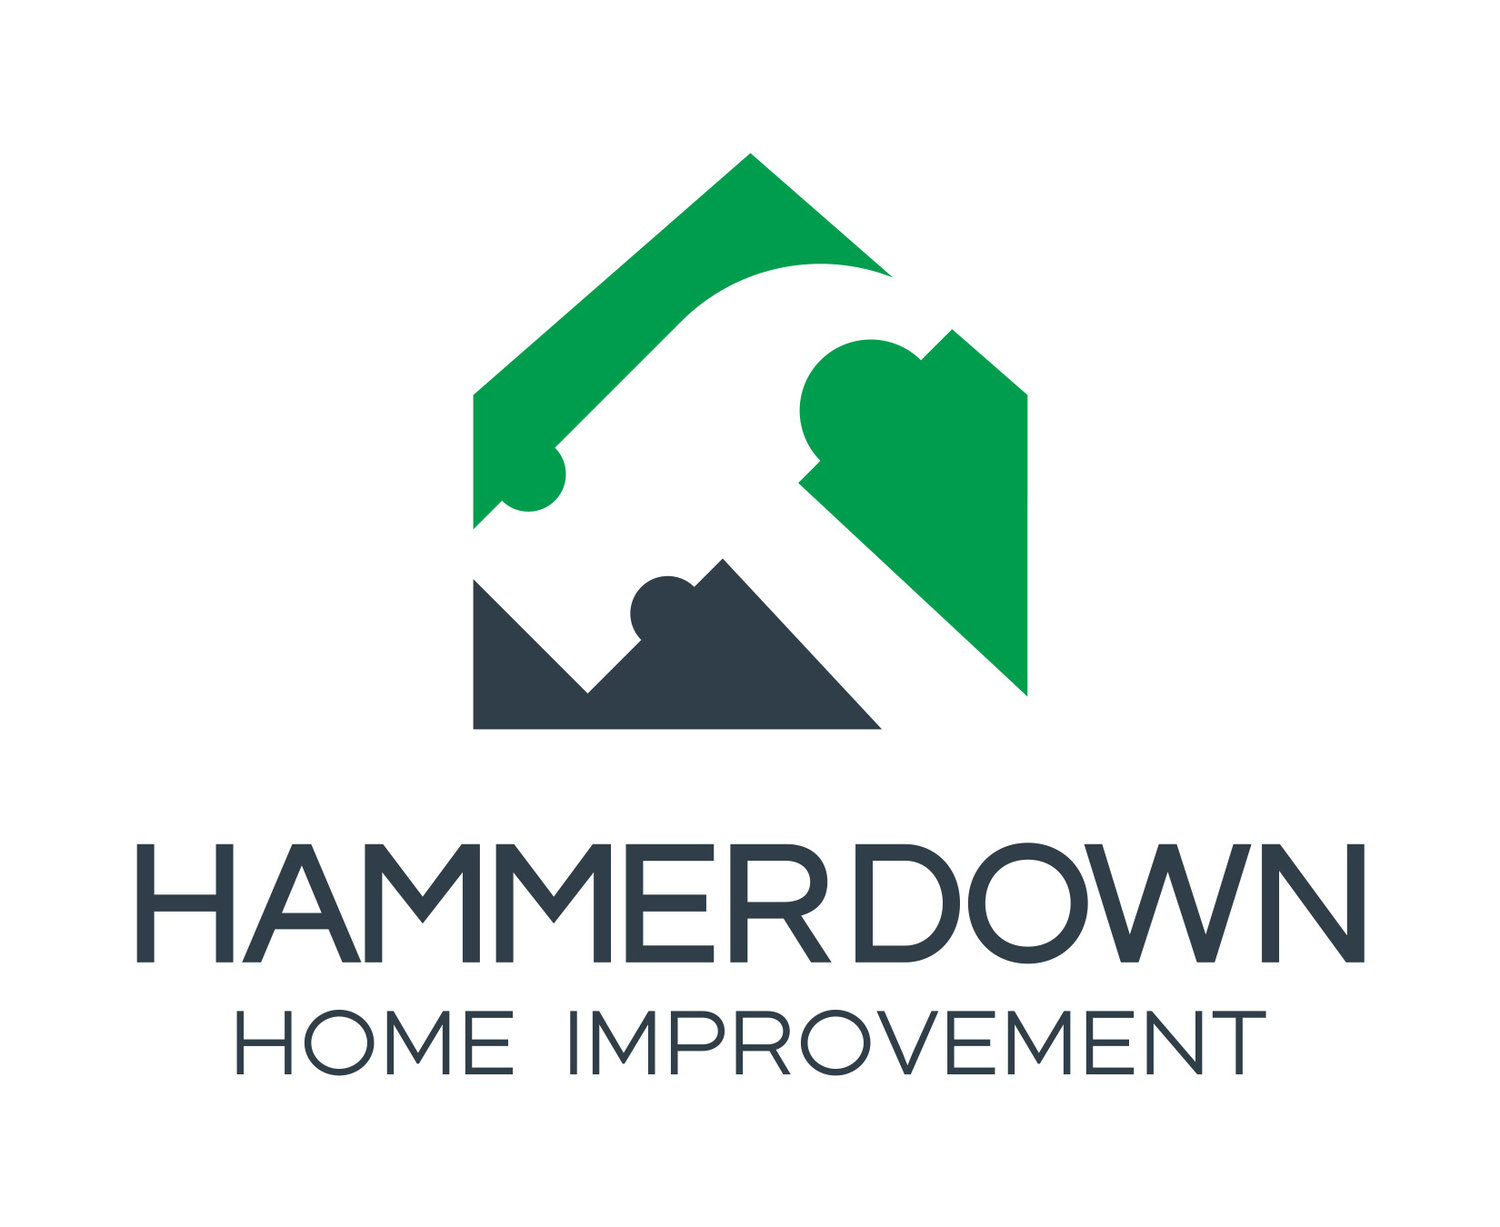 HammerDown Home Improvement | Serving Durham Region and Surrounding Area